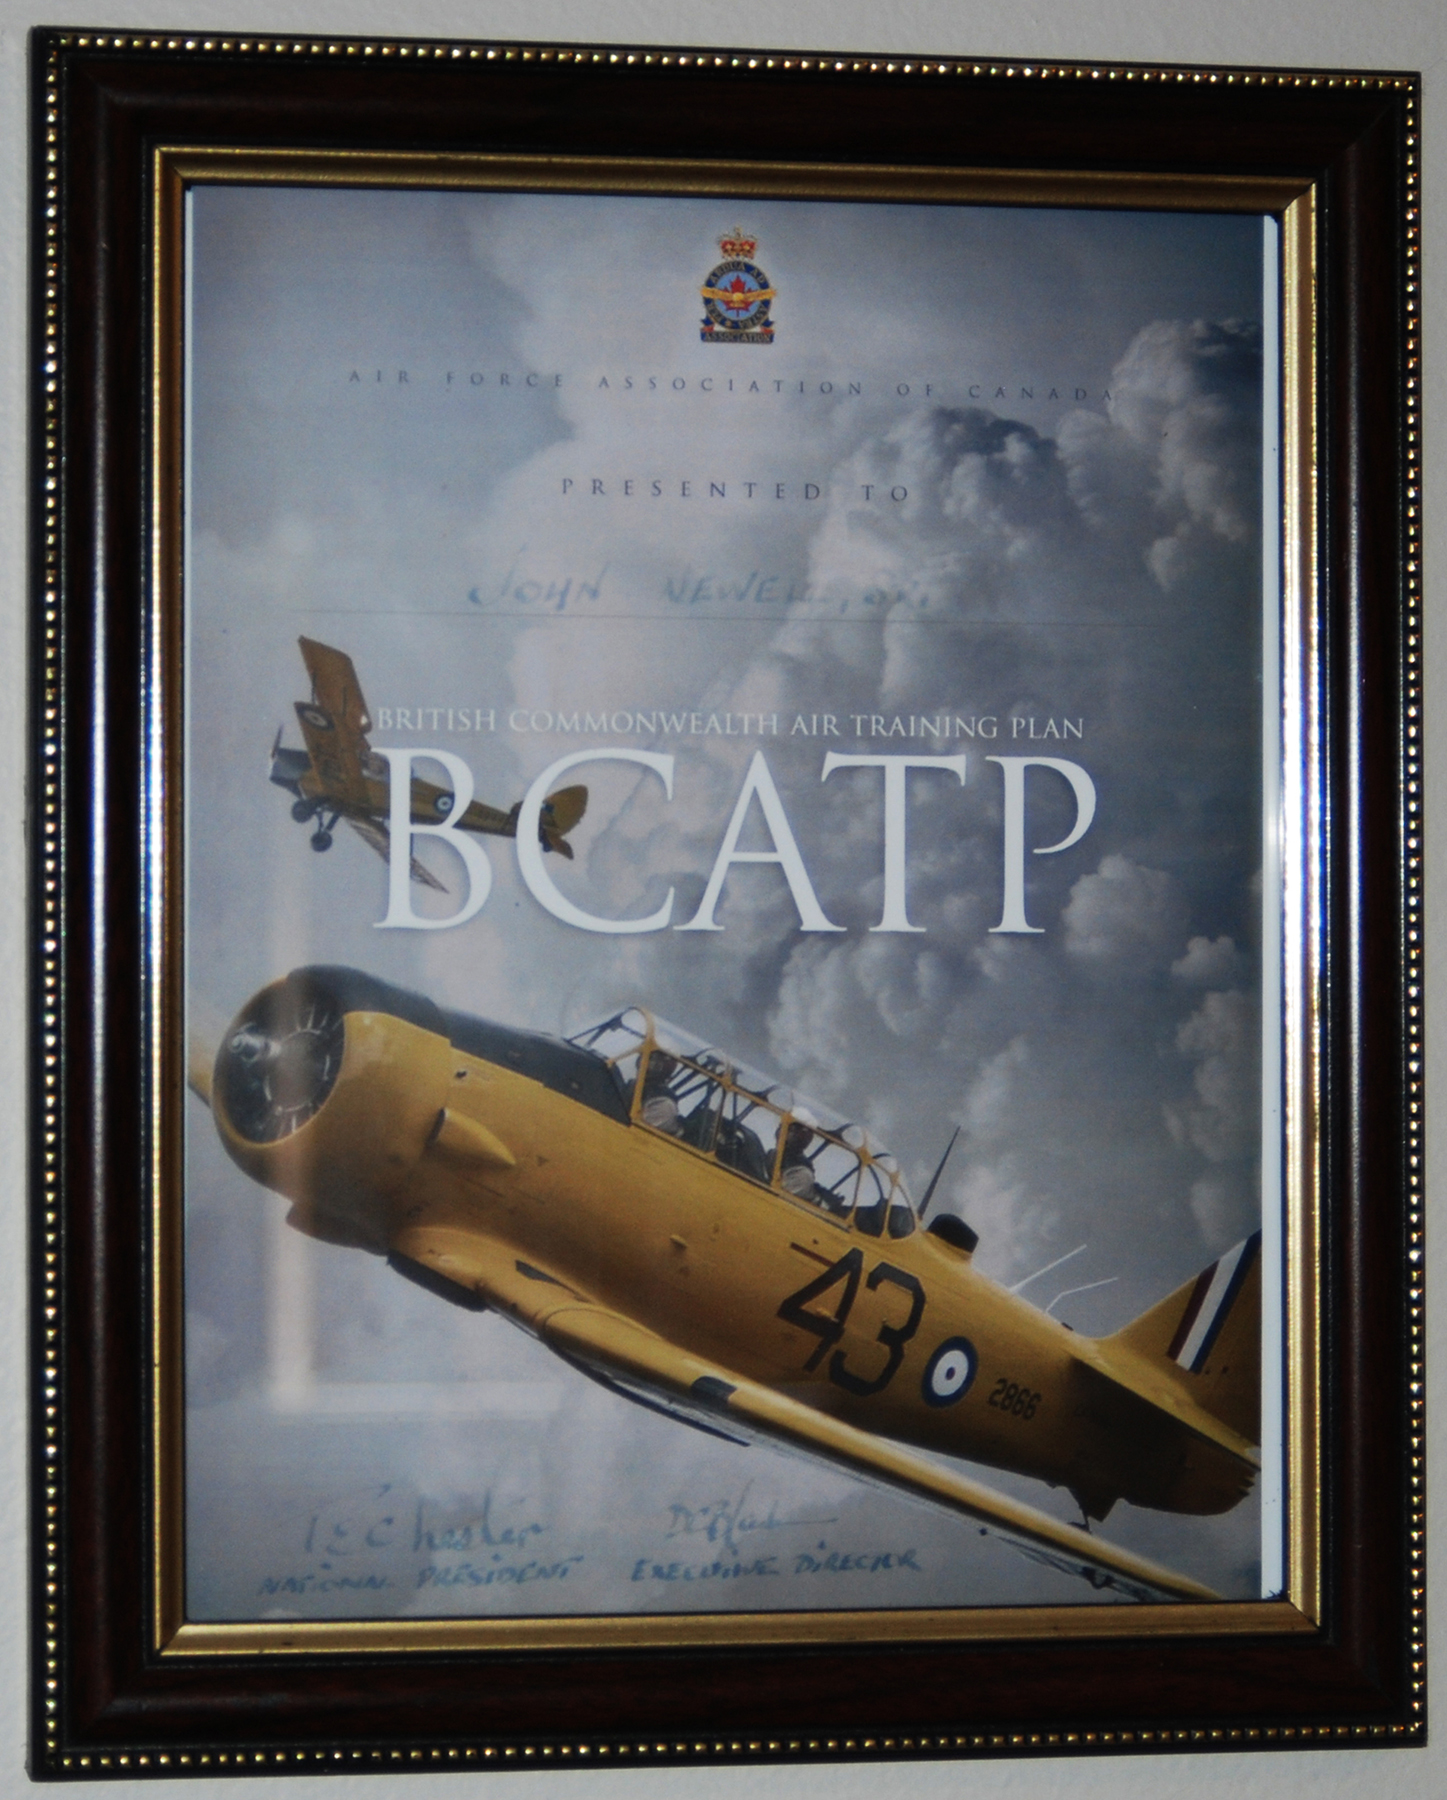 Hanging in a place of pride in Flying Officer (retired) John Newell's living room, a framed, undated commemorative certificate signed by the president and the executive director of the Air Force Association of Canada recognizes his contributions as an instructor under the British Commonwealth Air Training Plan during the Second World War. PHOTO: Alexandra Baillie-David